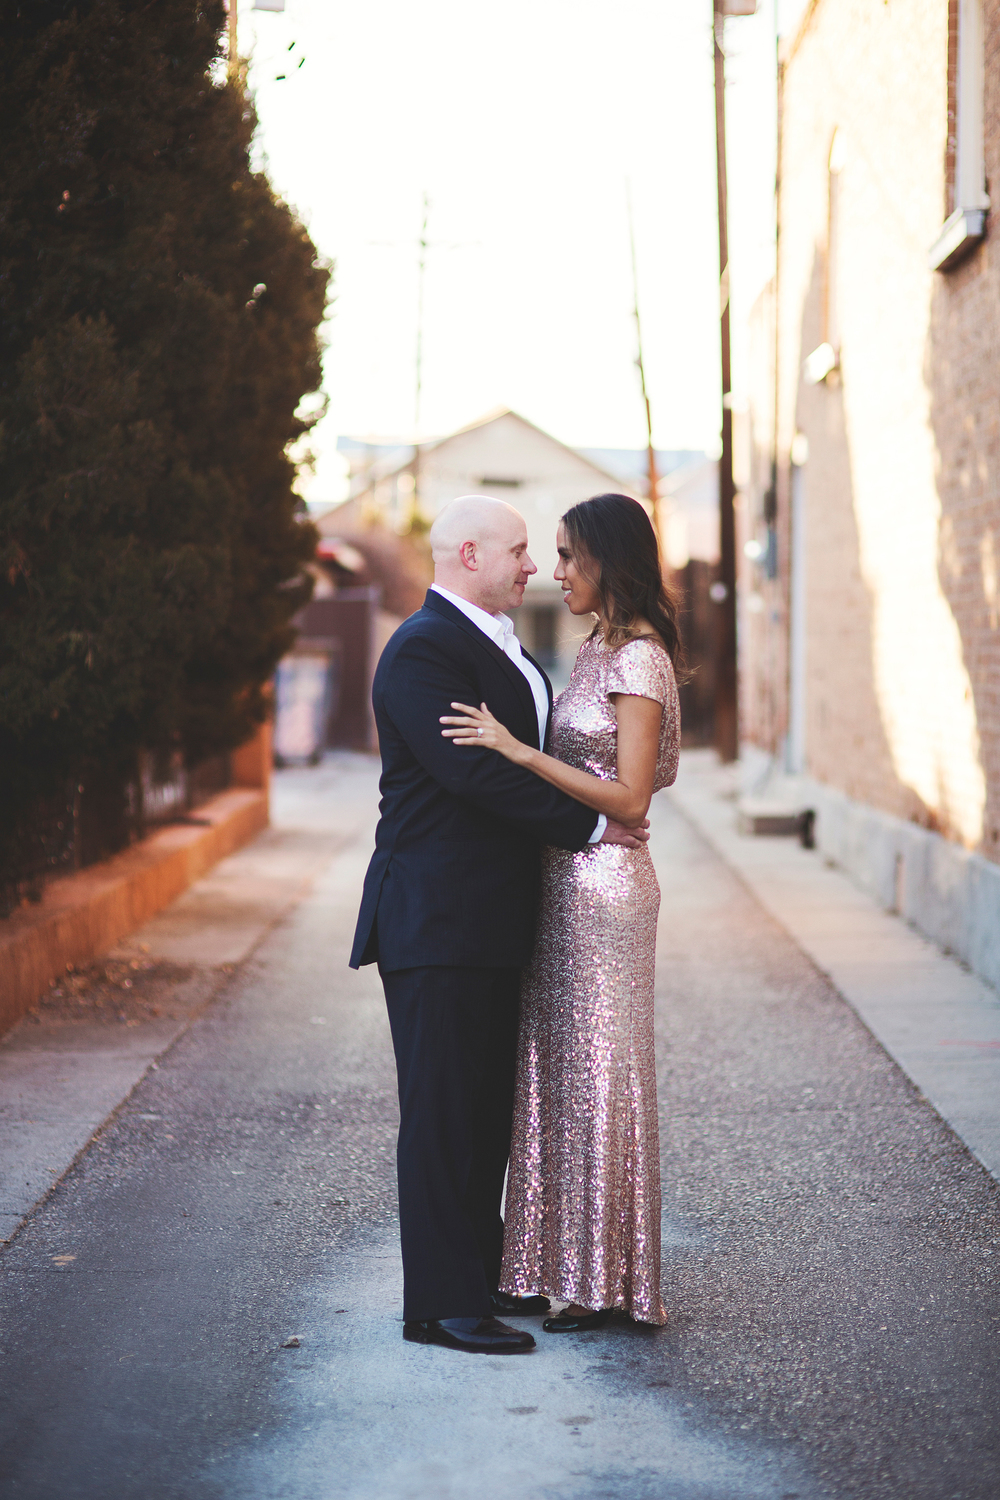 Old Town Albuquerque Elopement | New Mexico Wedding | Liz Anne Photography 14 copy.jpg